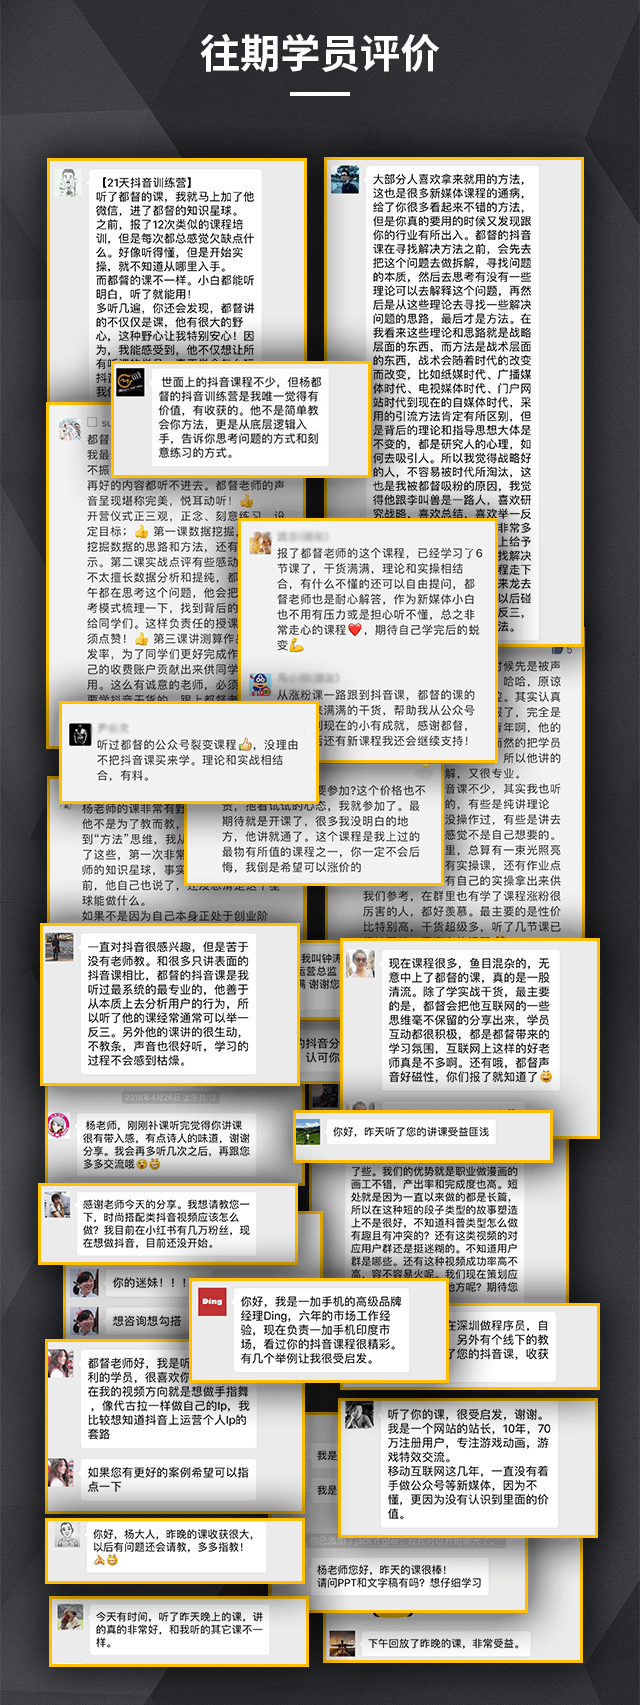 http://img.weike.fm/editor/34786990/e3403893137843a61a98004684c3fd8f